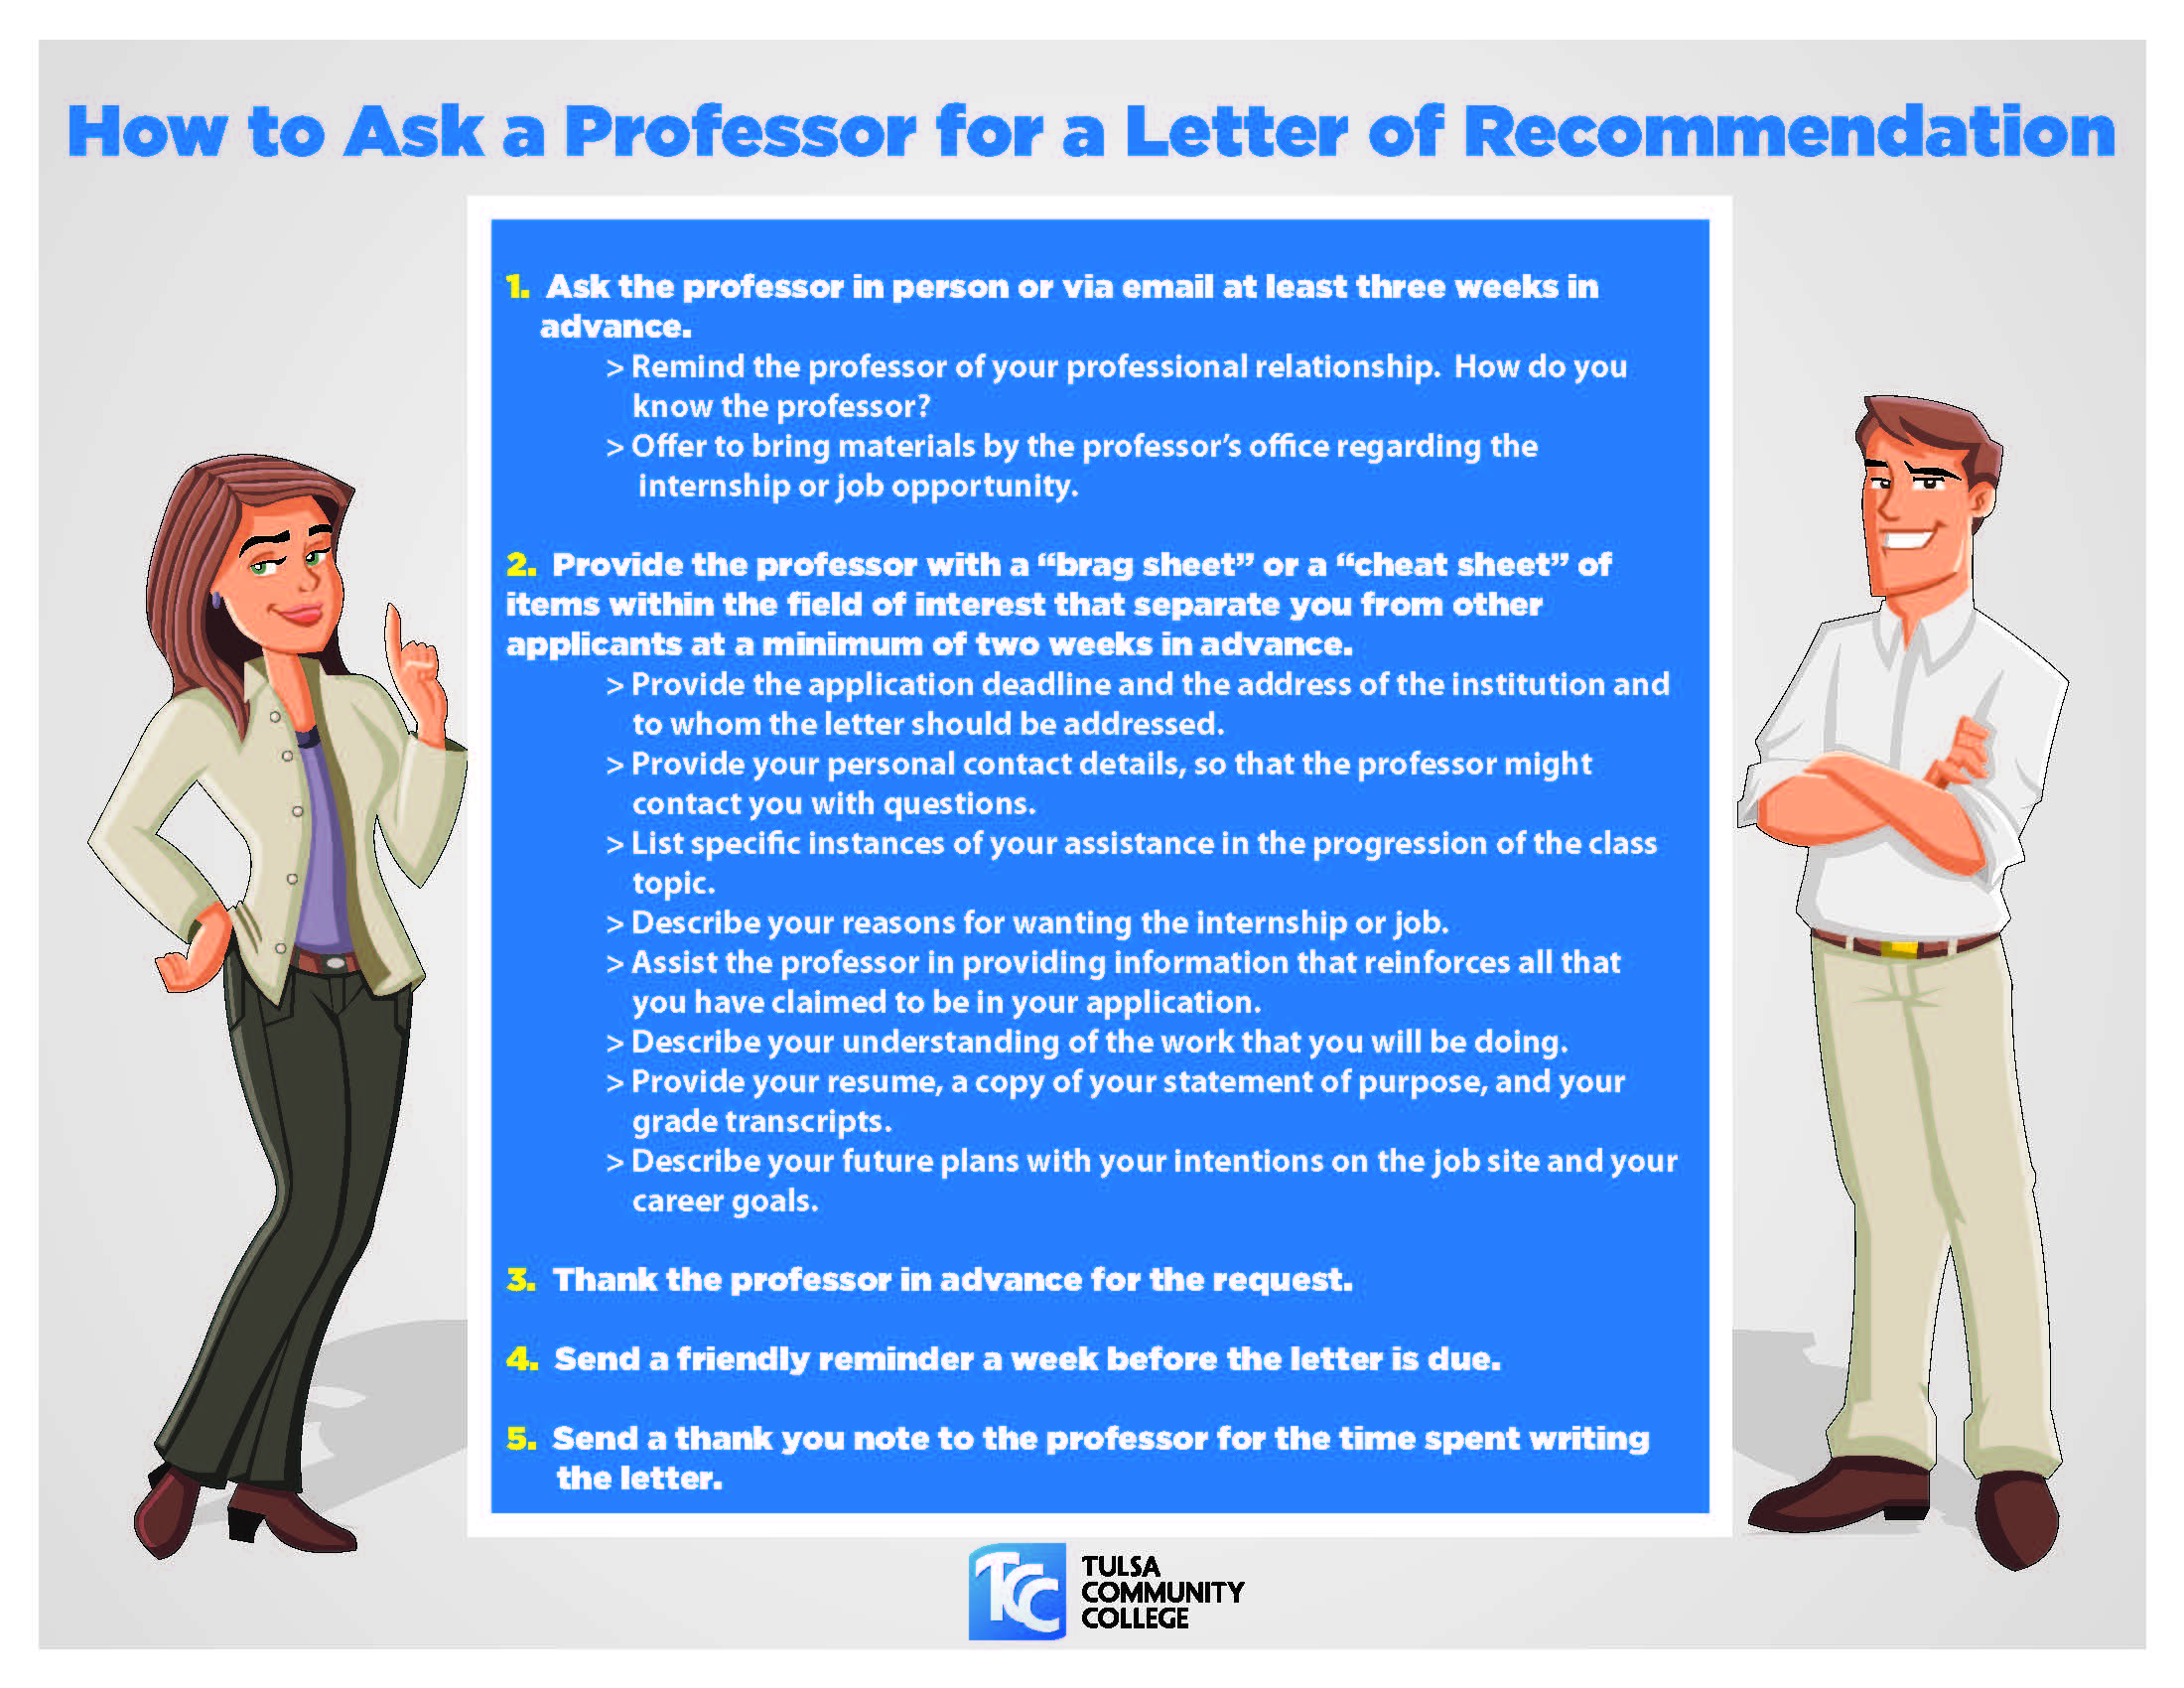 How to As a Professor for a Letter of Recommendation Picture